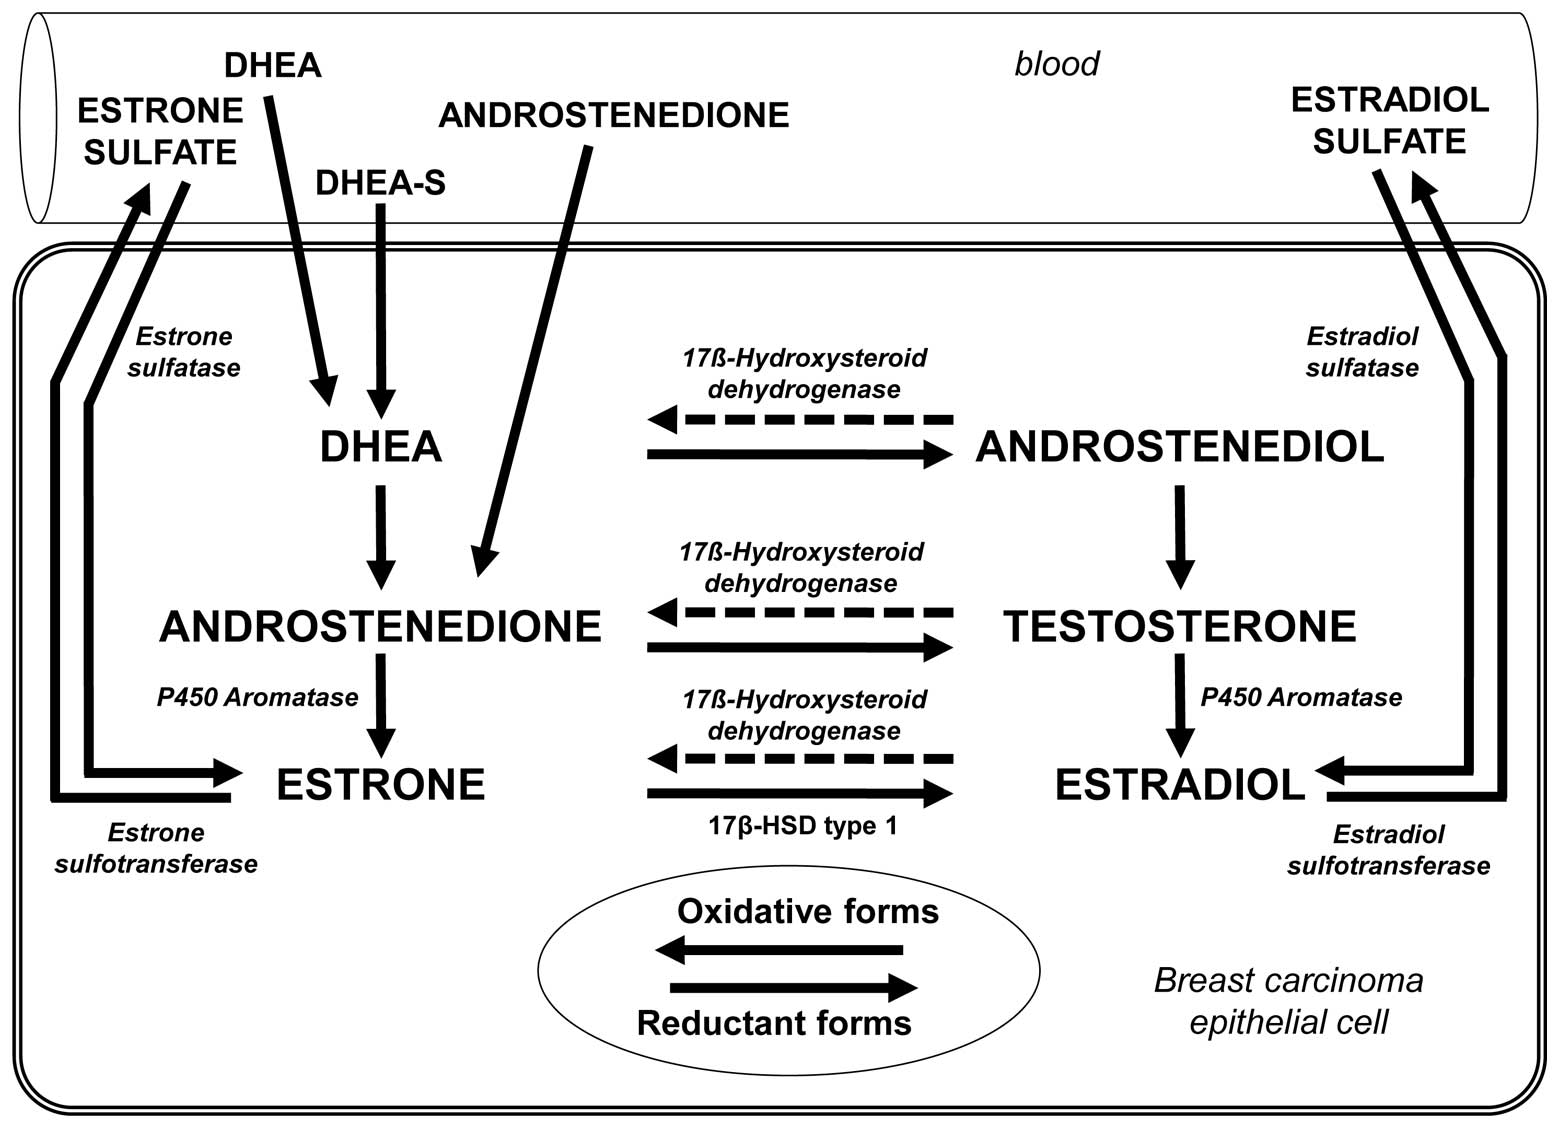 oestrogen-synthesising enzymes and breast cancer Key events of oestrogen synthesis or signalling, such as aromatase activity,   specific tumours, such as breast cancer and endometrial adenocarcinoma [23, 24 ]  e2 can be metabolised by the cyp1a1 and cyp1b1 enzymes to catechol.